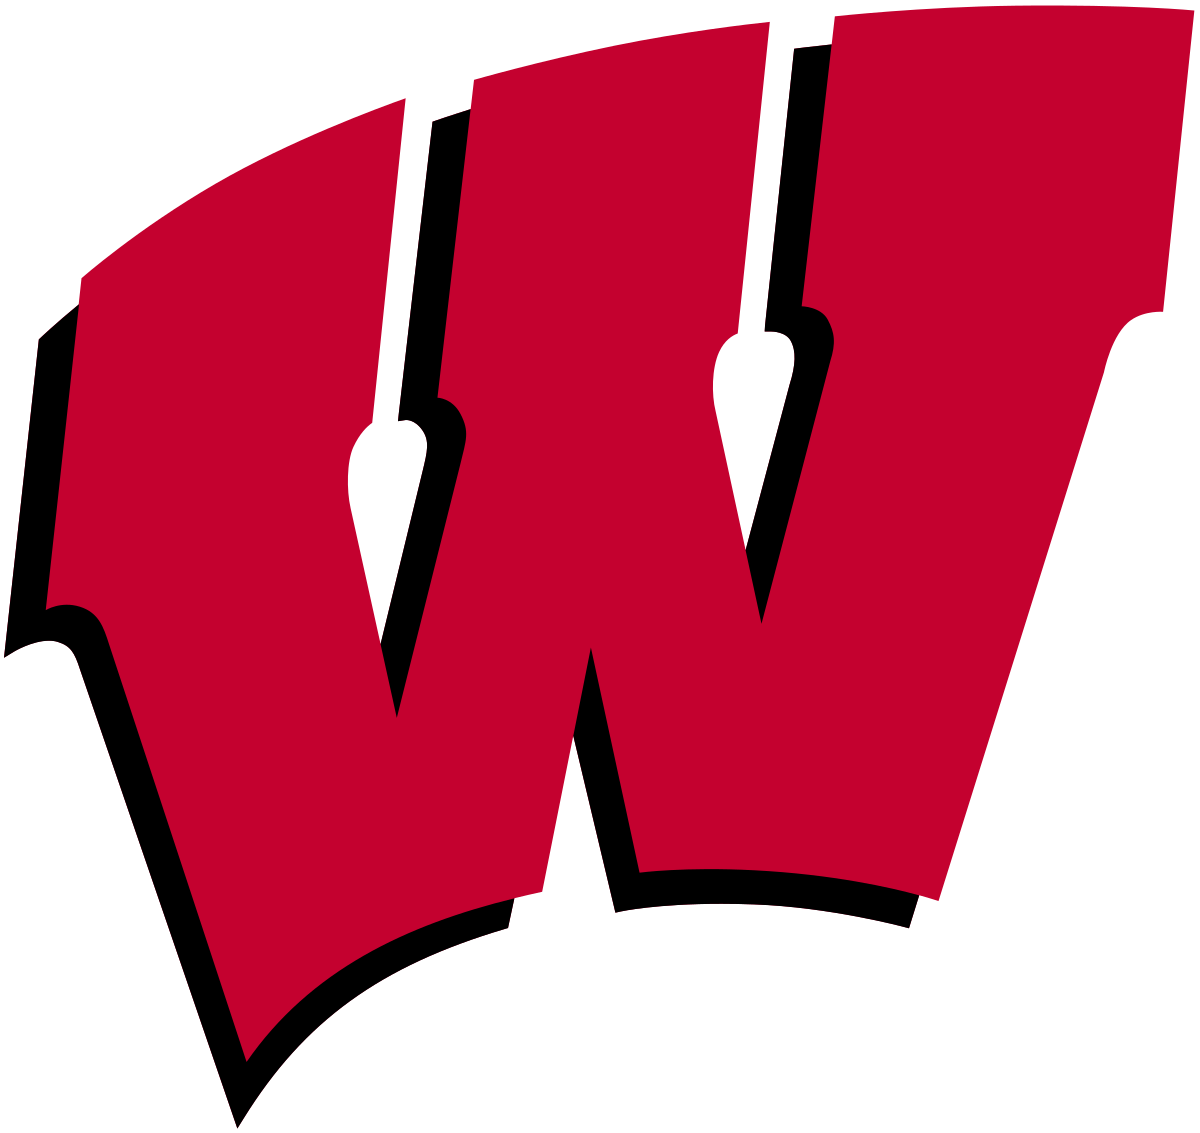 Wisconsin fall outdoors clipart clipart download 2010 Wisconsin Badgers football team - Wikipedia clipart download